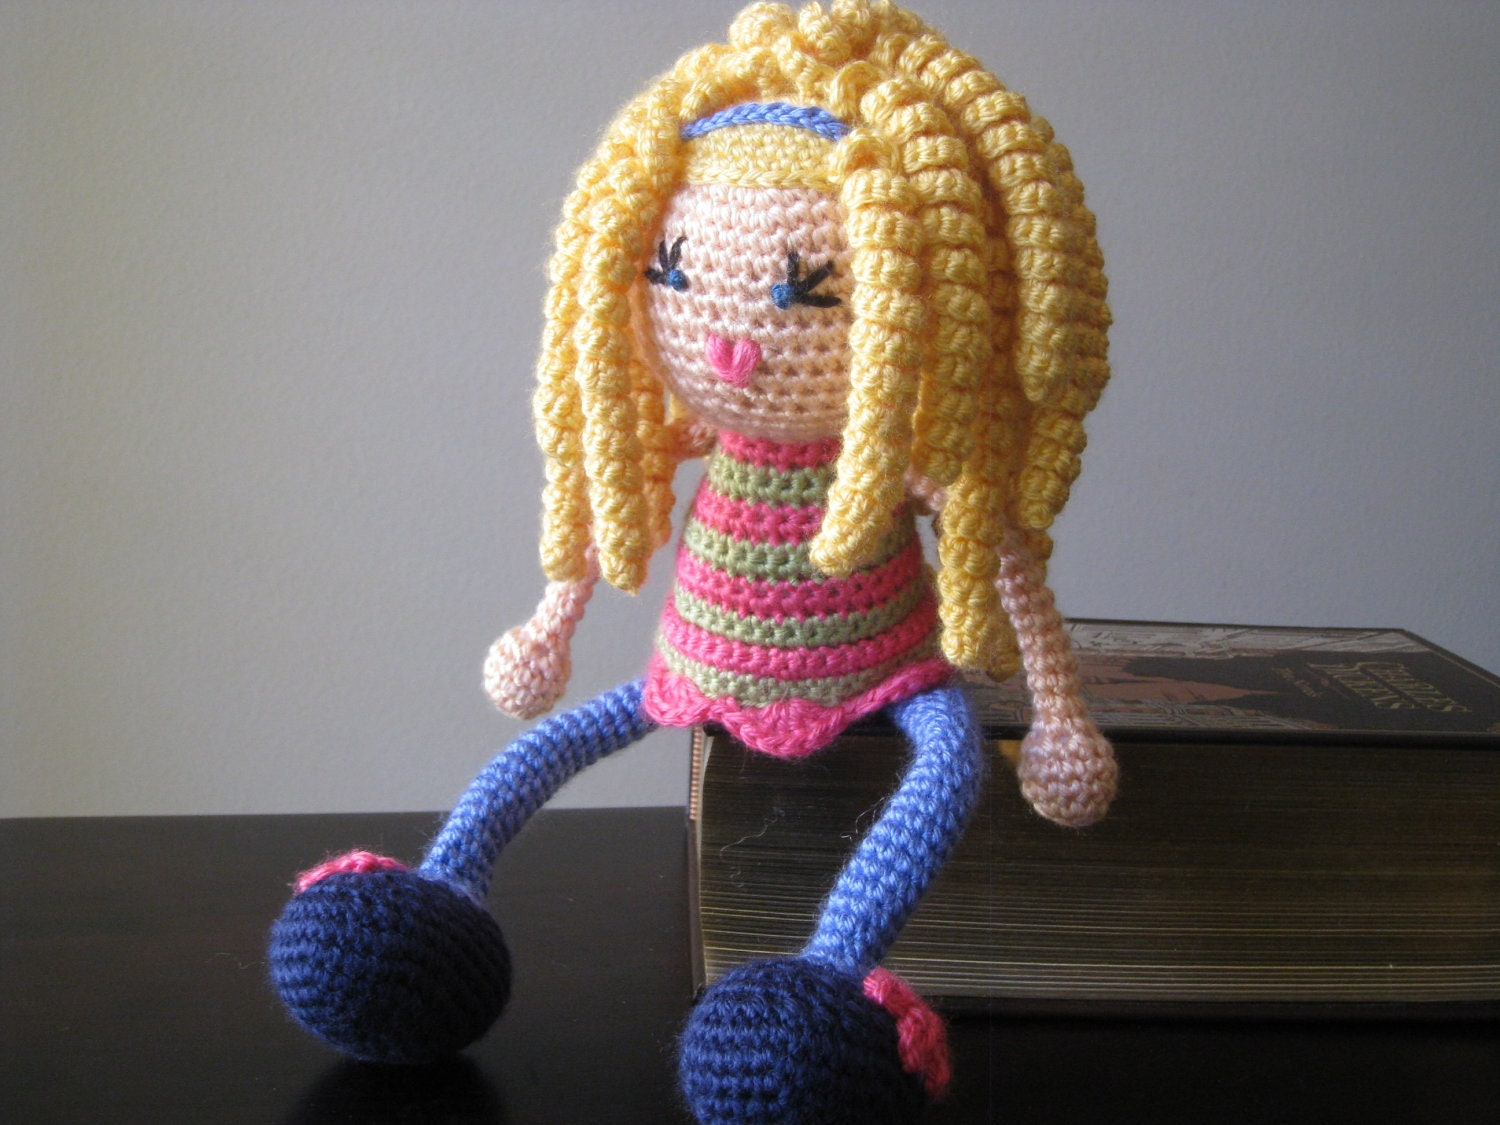 Crochet Hair On Dolls : CROCHET PATTERN Blond Curly Haired Doll Plush by LeenGreenBean